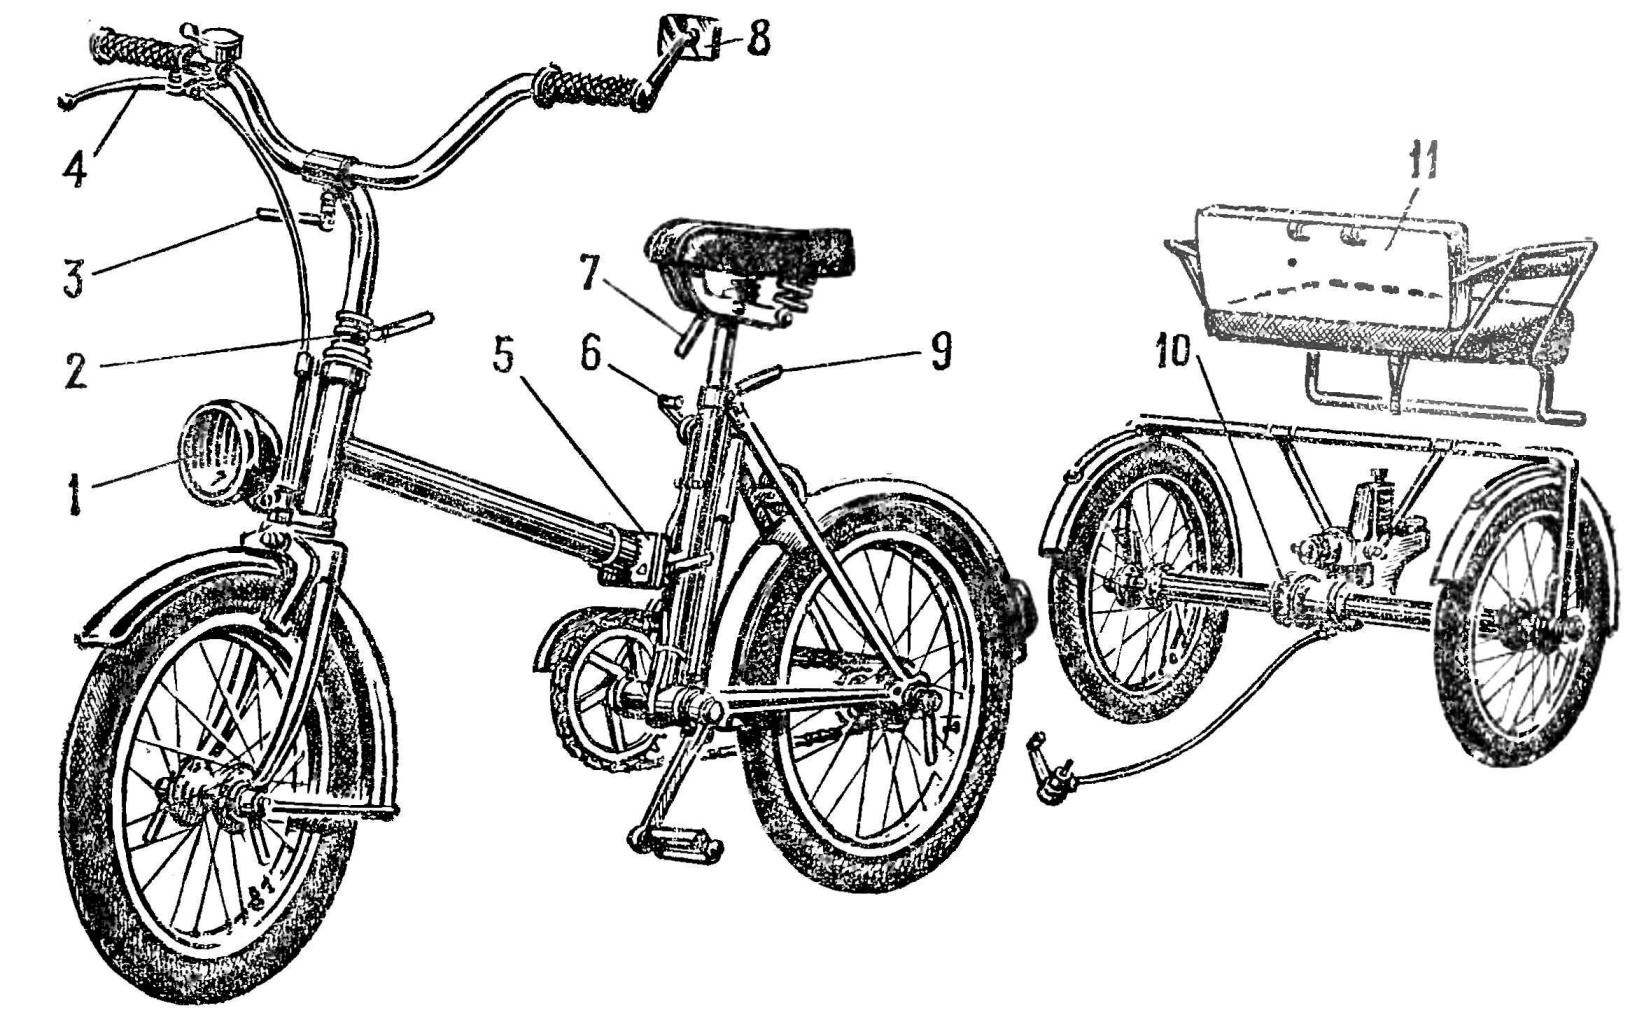 Fig. 1. General view of the bike